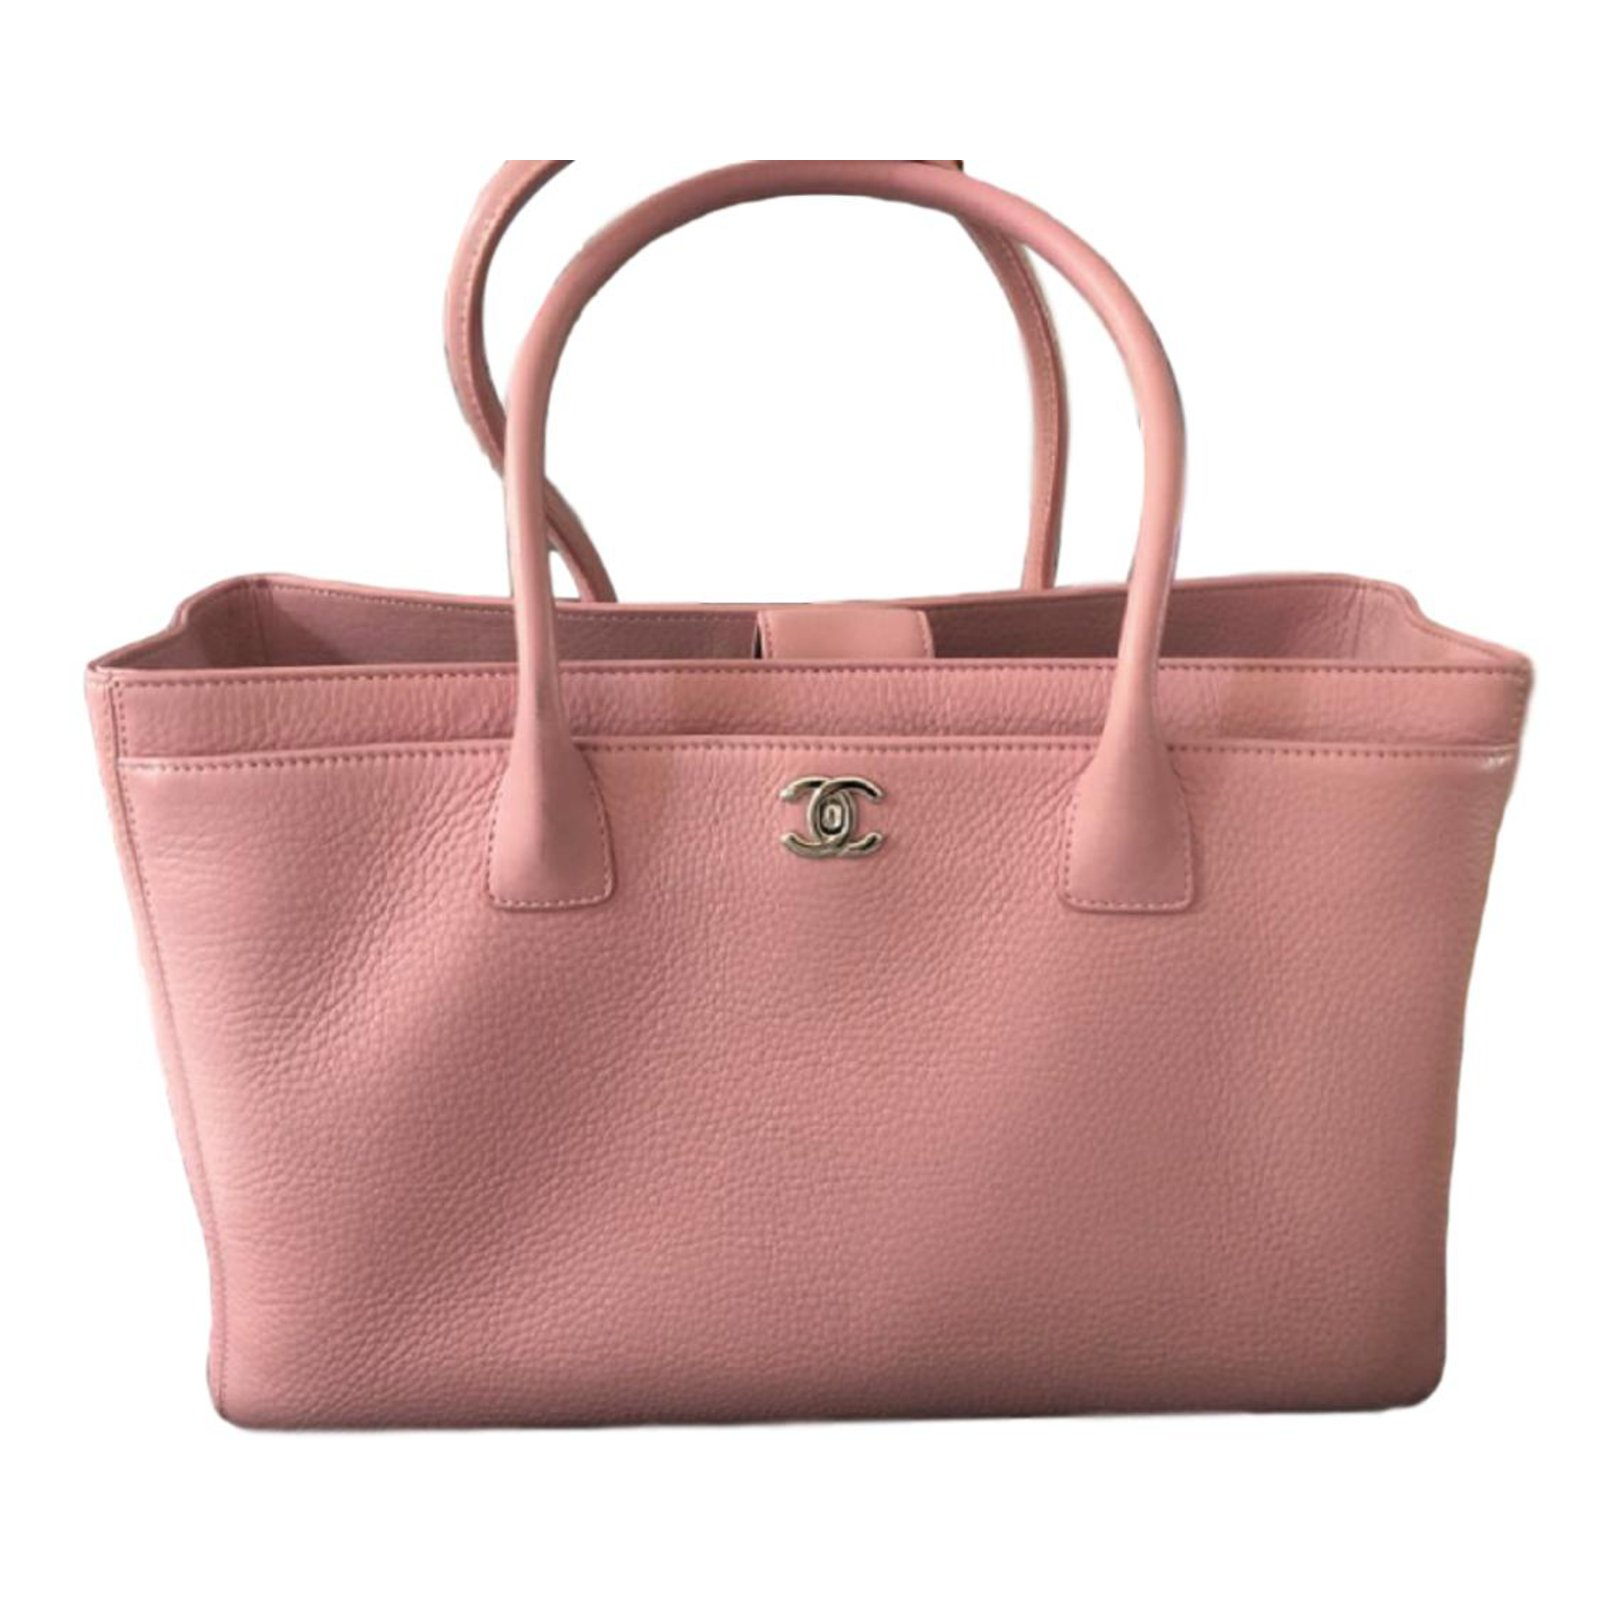 5e39ac4d151abb Chanel Pink Executive Cerf Tote Handbags Leather Pink ref.88976 ...